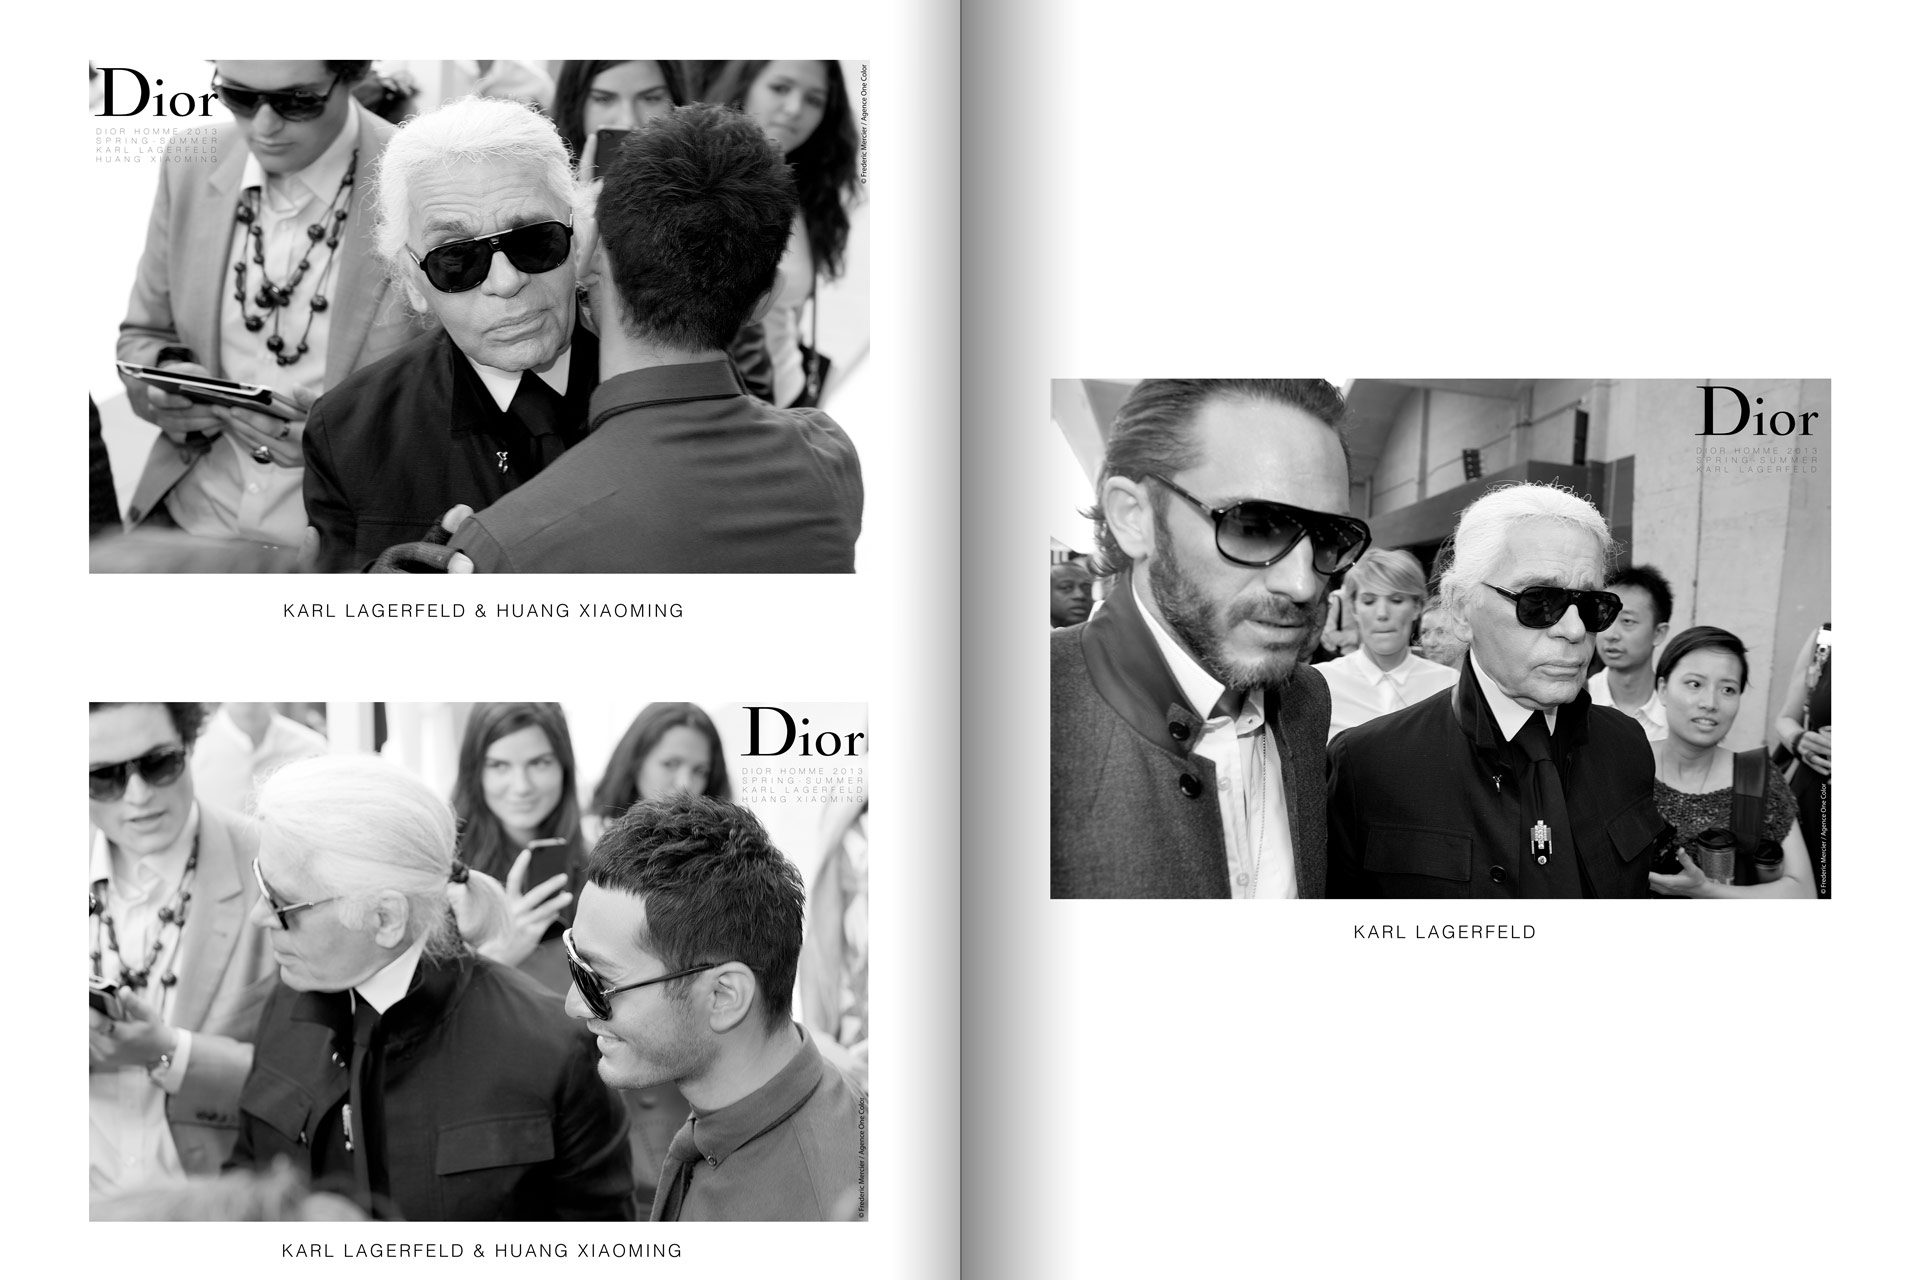 frederic mercier fashion photographer one color portraits people karl lagerfeld and huang xiaoming for dior